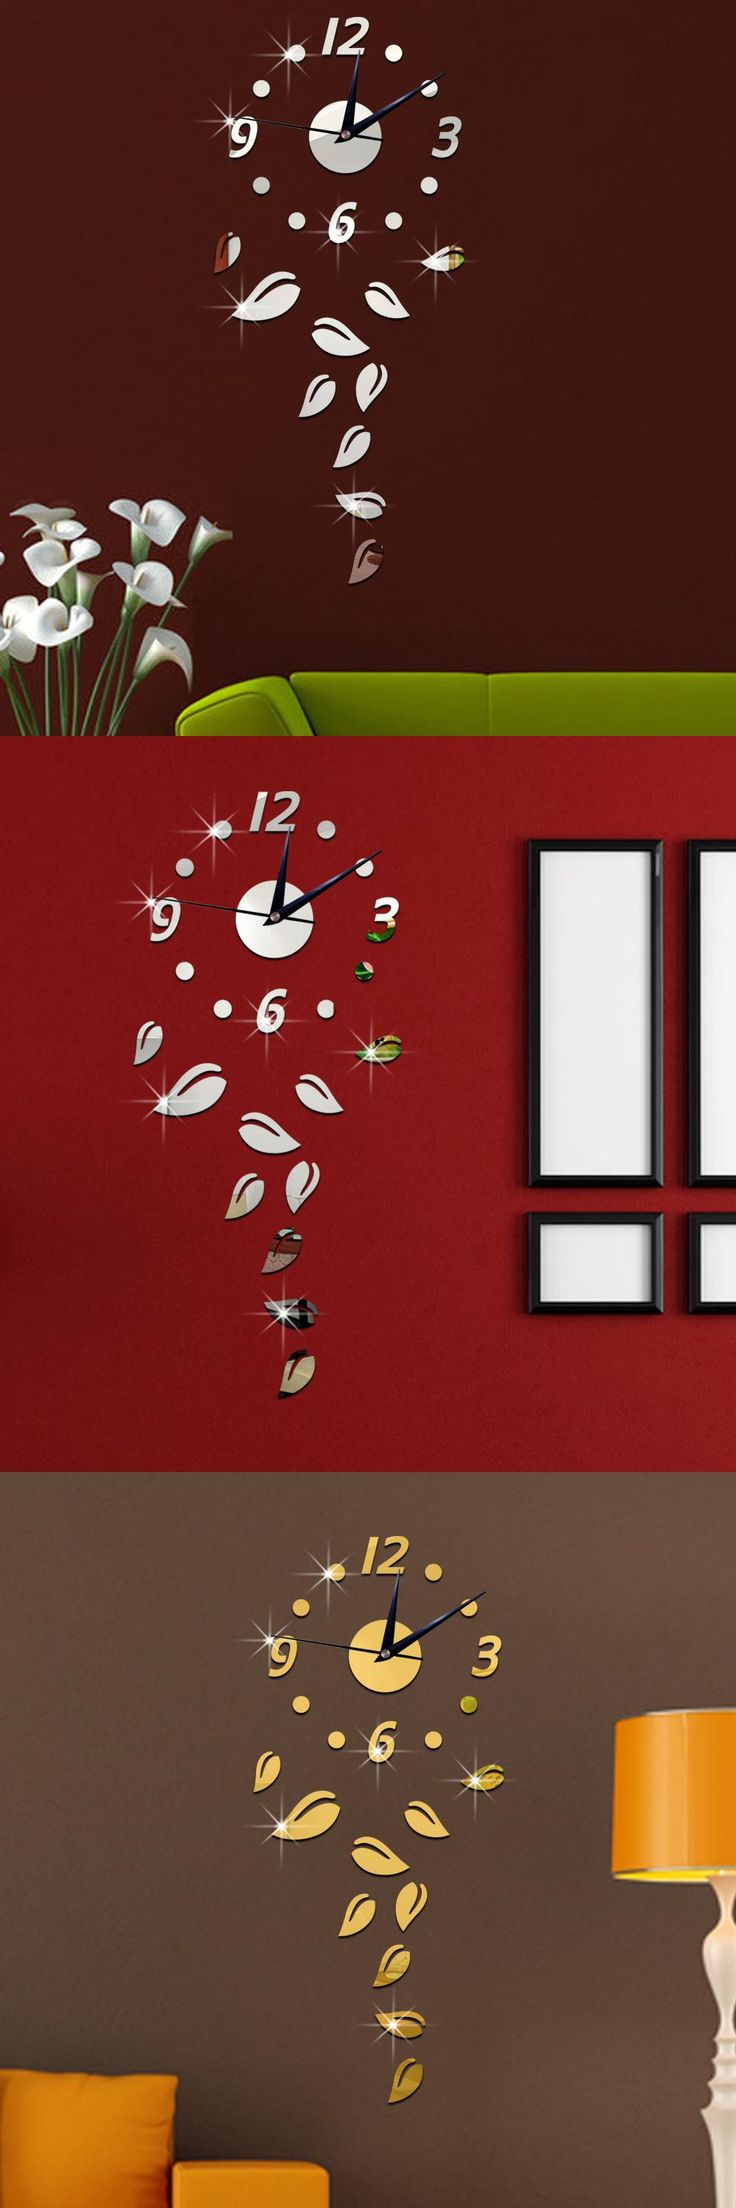 Best 25 mirror wall clock ideas on pinterest wall clocks s wall clock fashion creative clock clock and mirror wall clock personality beautiful and nice amipublicfo Image collections